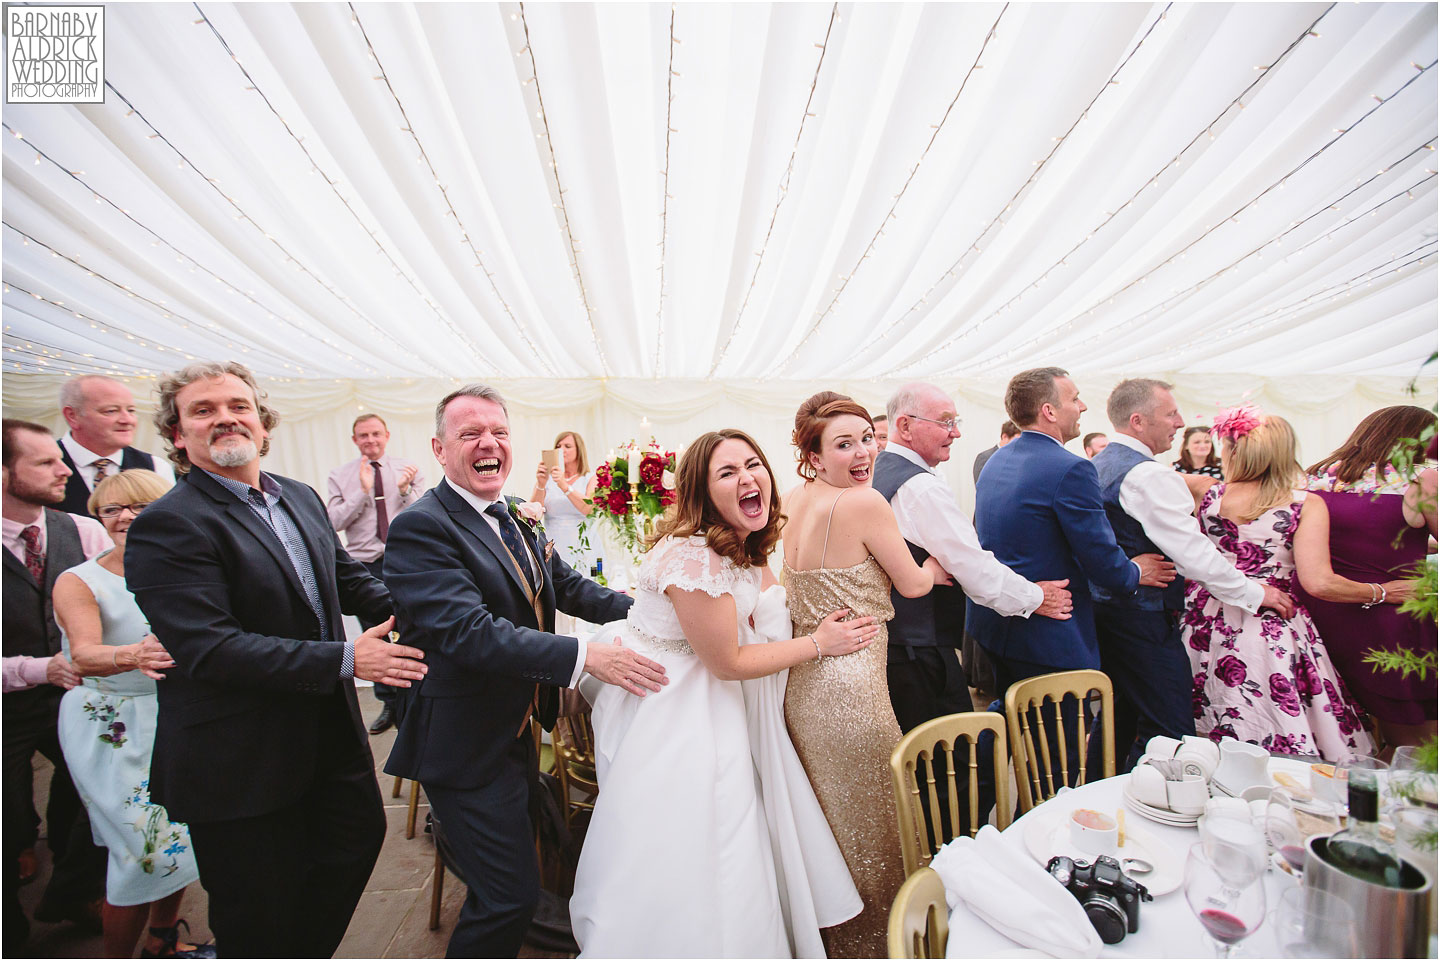 Conga Line at The Inn at Whitewell, Howard Wing MC, Lancashire wedding Photographer